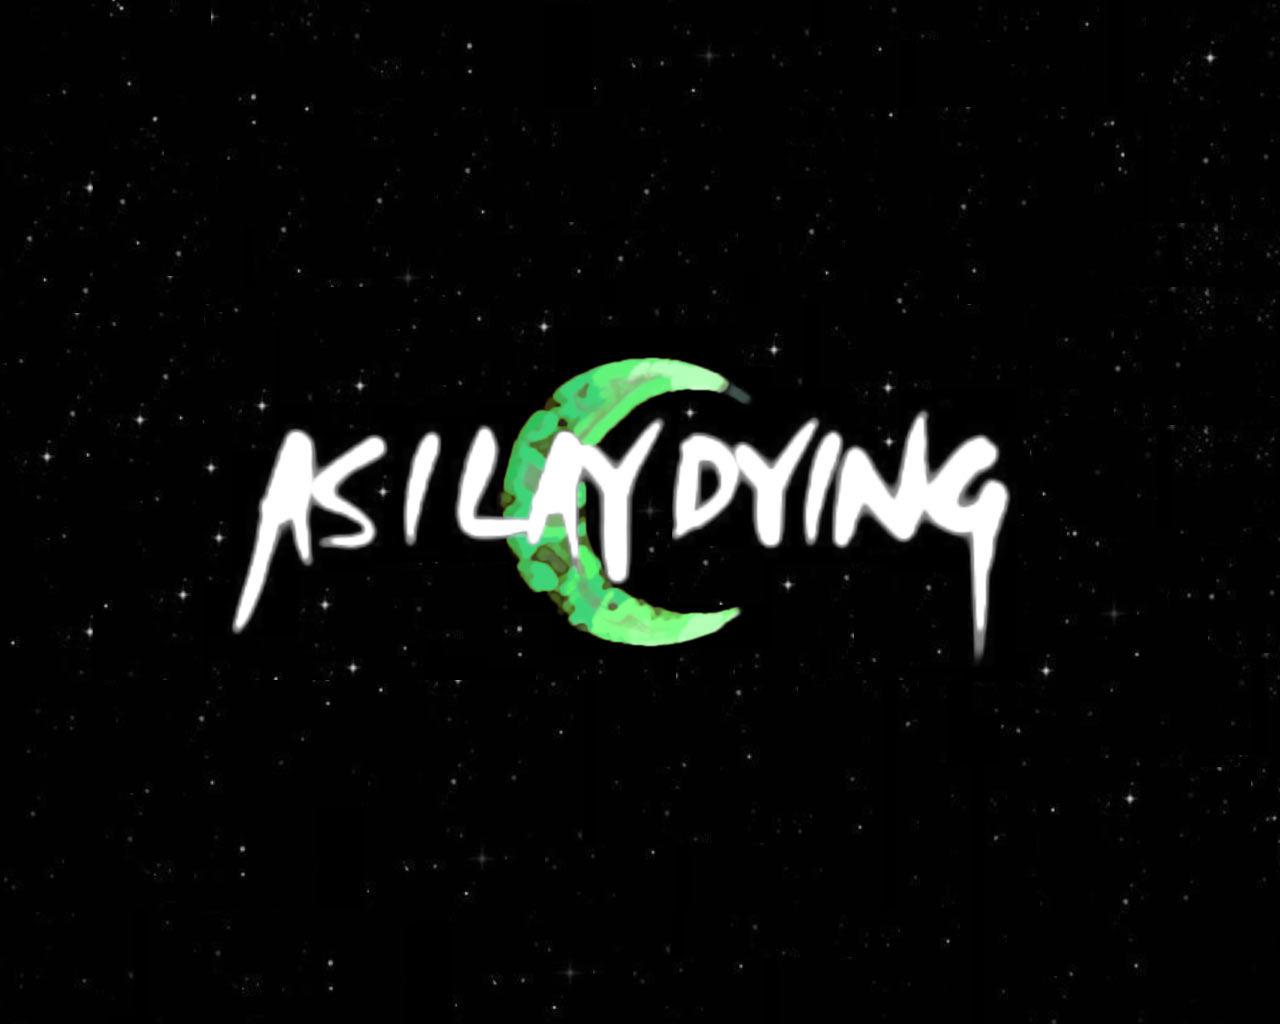 As I Lay Dying Bandswallpapers Free Wallpapers Music